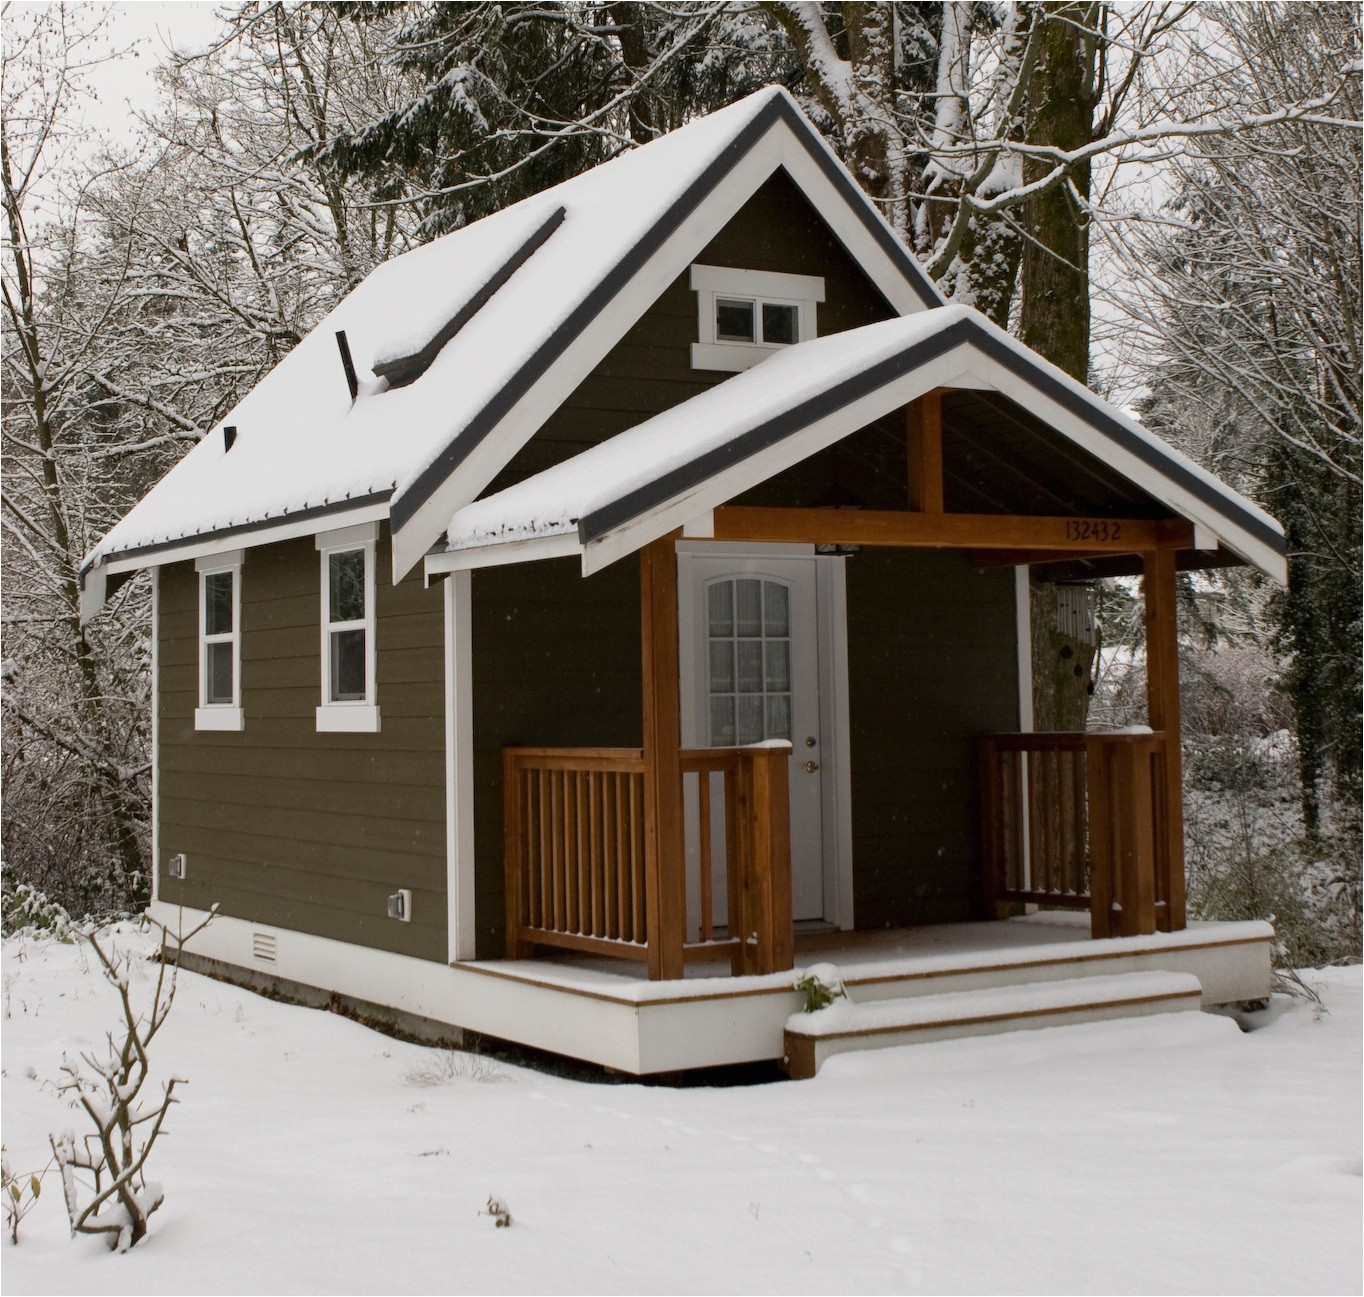 House Plans Small Homes the Tiny House Movement Part 1